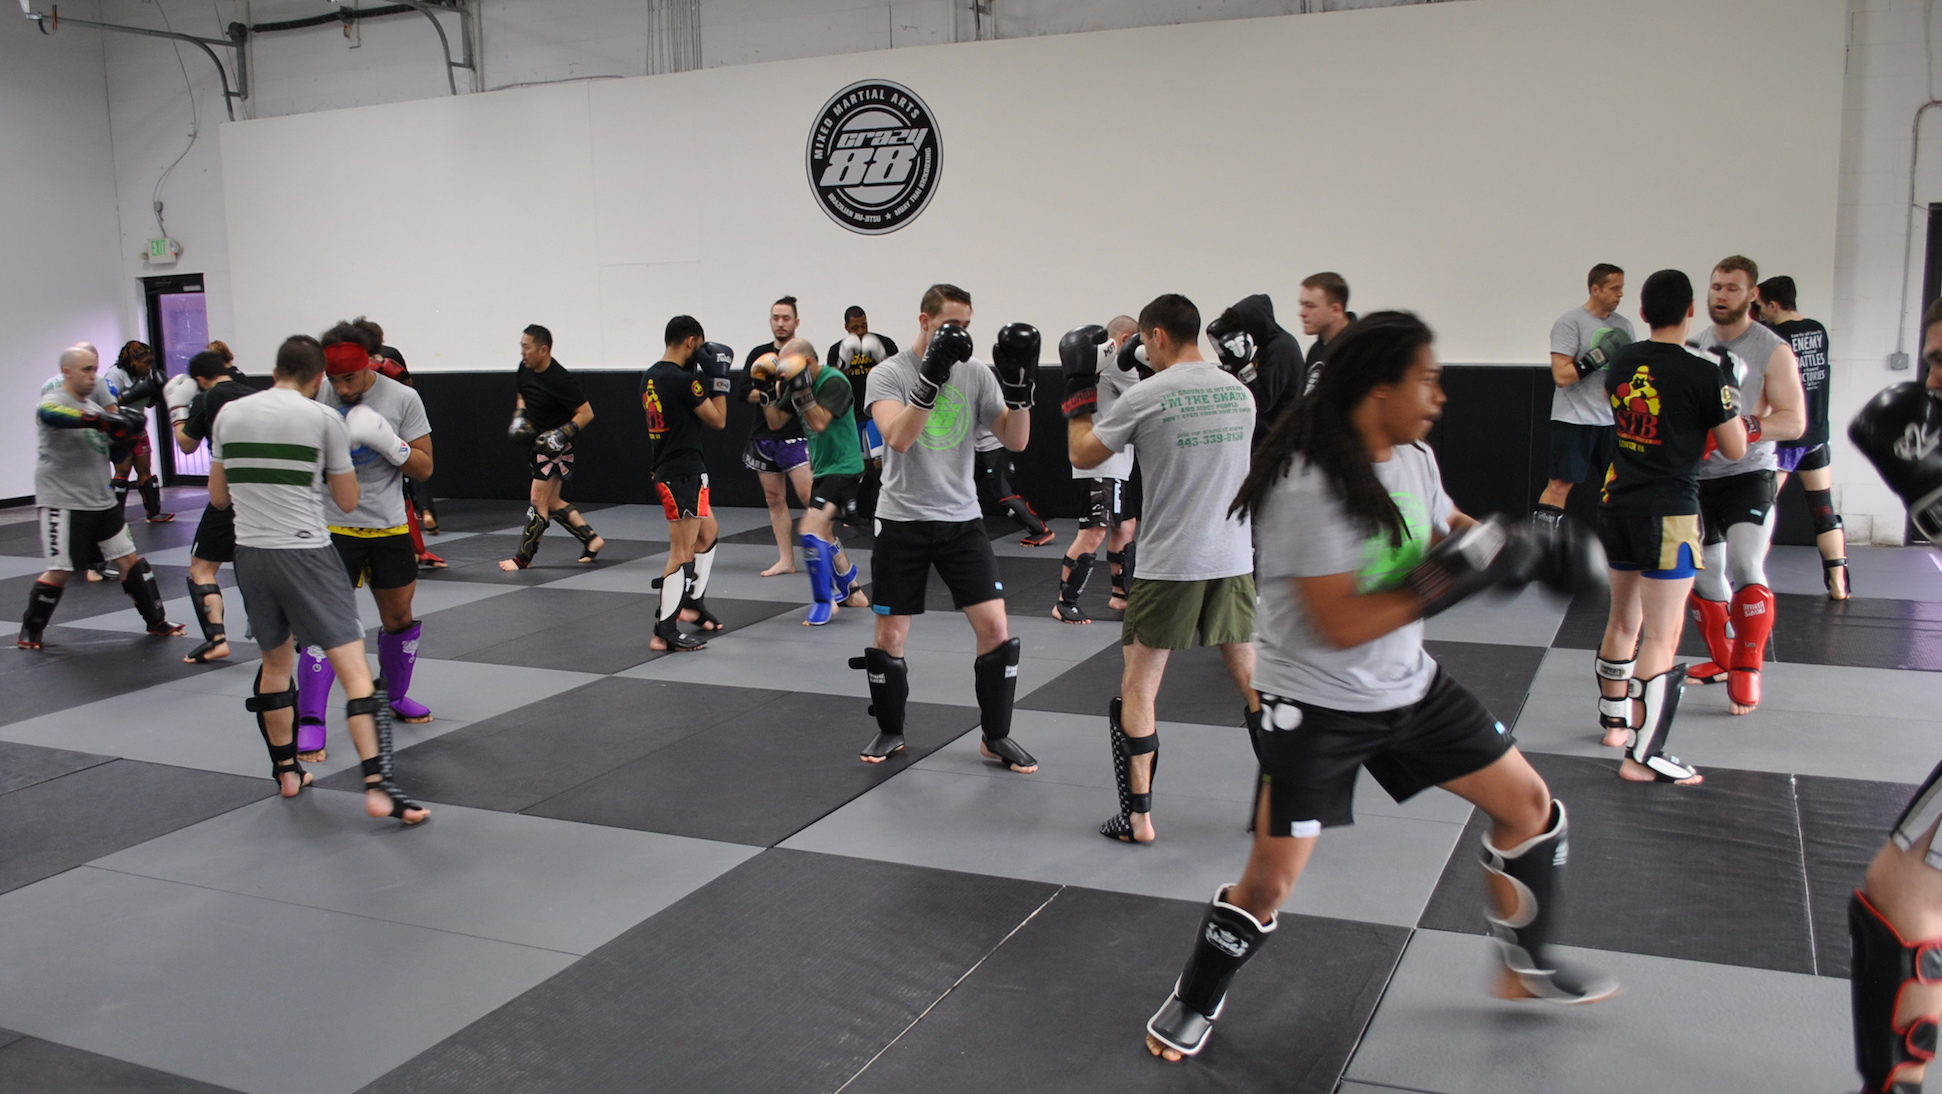 Sparring at the 2018 Feb Joint Muay Thai training